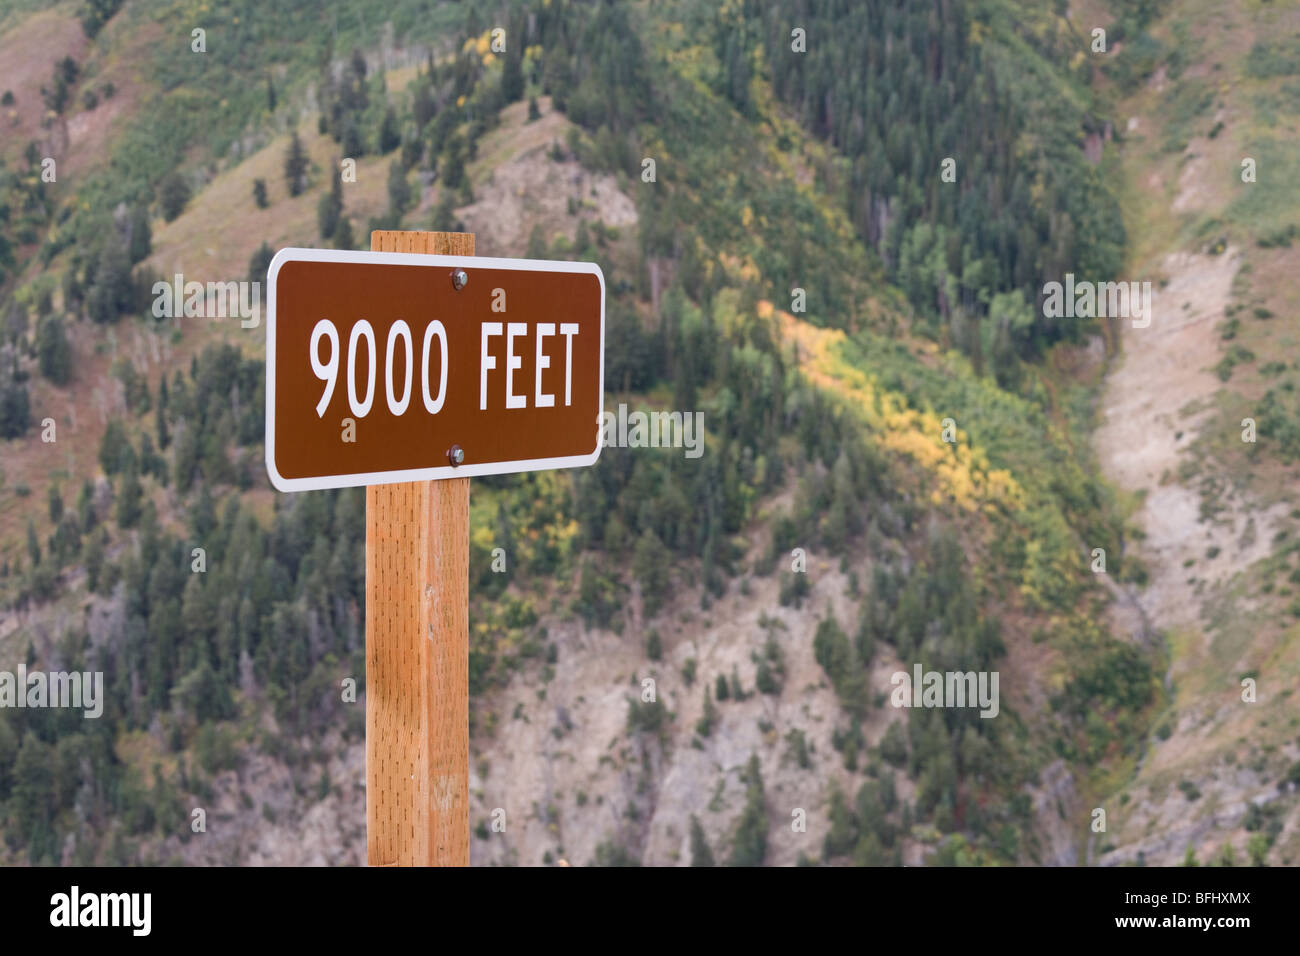 Sign high altitude 9000 ft feet. Looking down from the Mount Nebo Loop US Scenic Byway. The first signs of autumn. - Stock Image